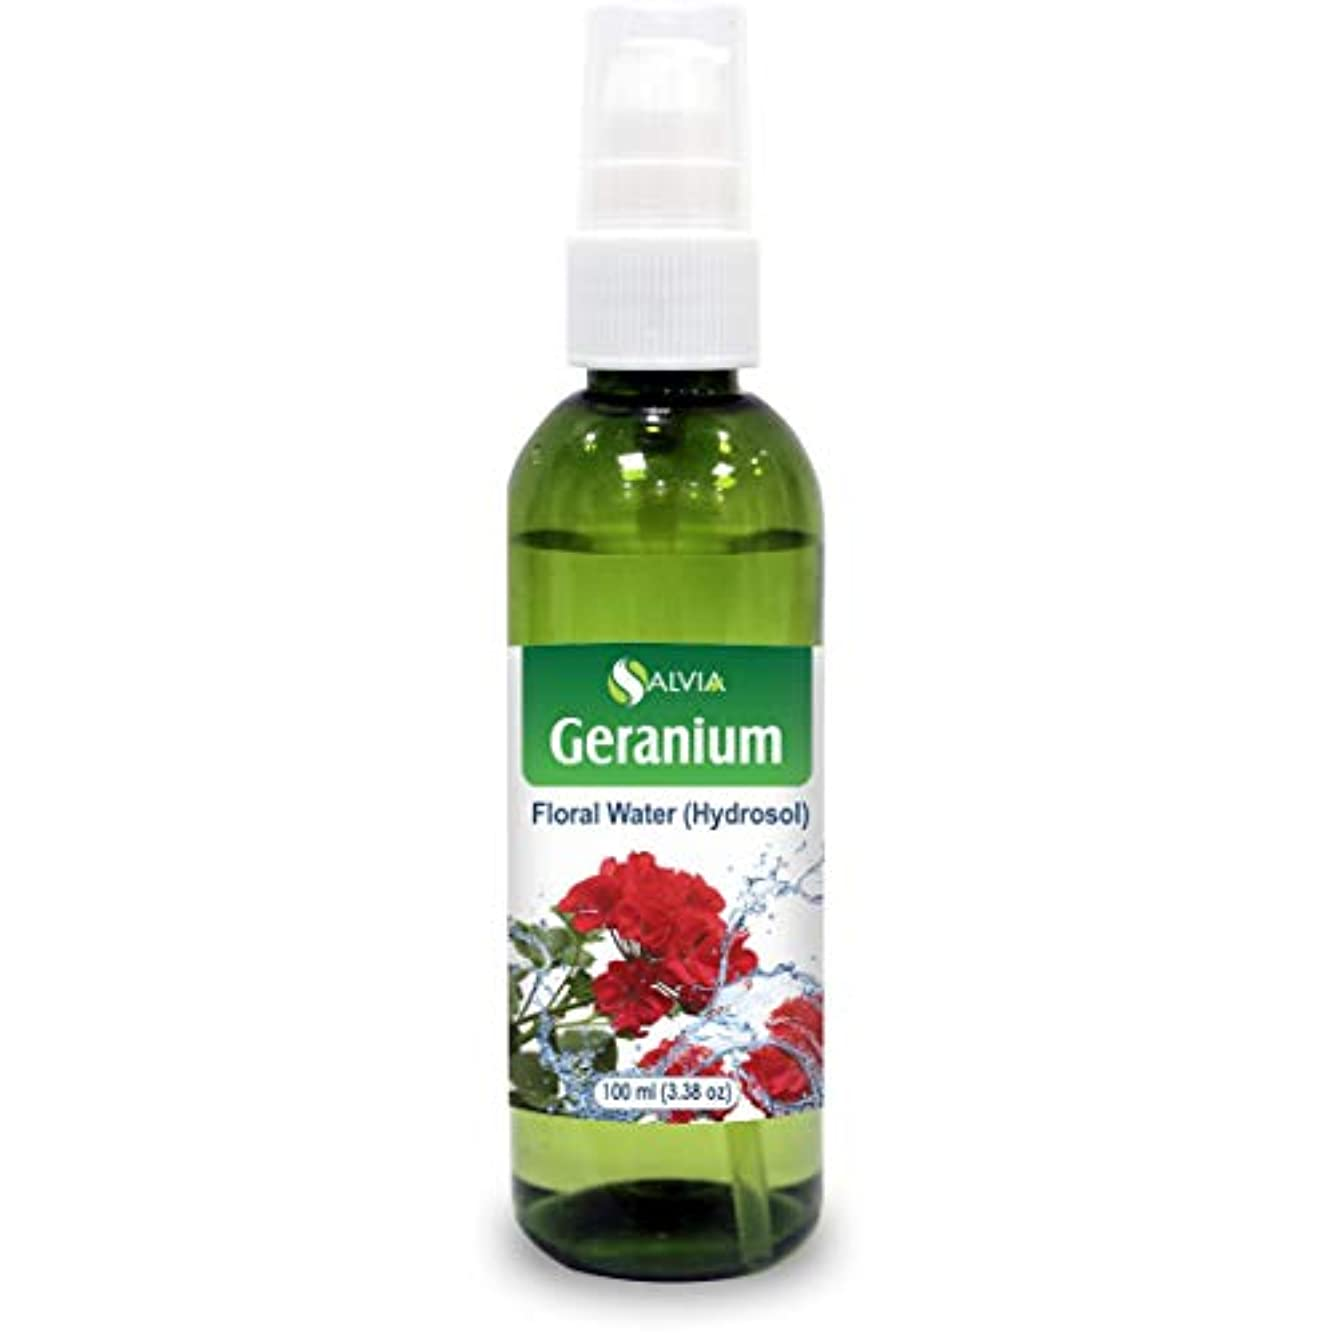 樫の木テレビ局瞑想Geranium Floral Water 100ml (Hydrosol) 100% Pure And Natural